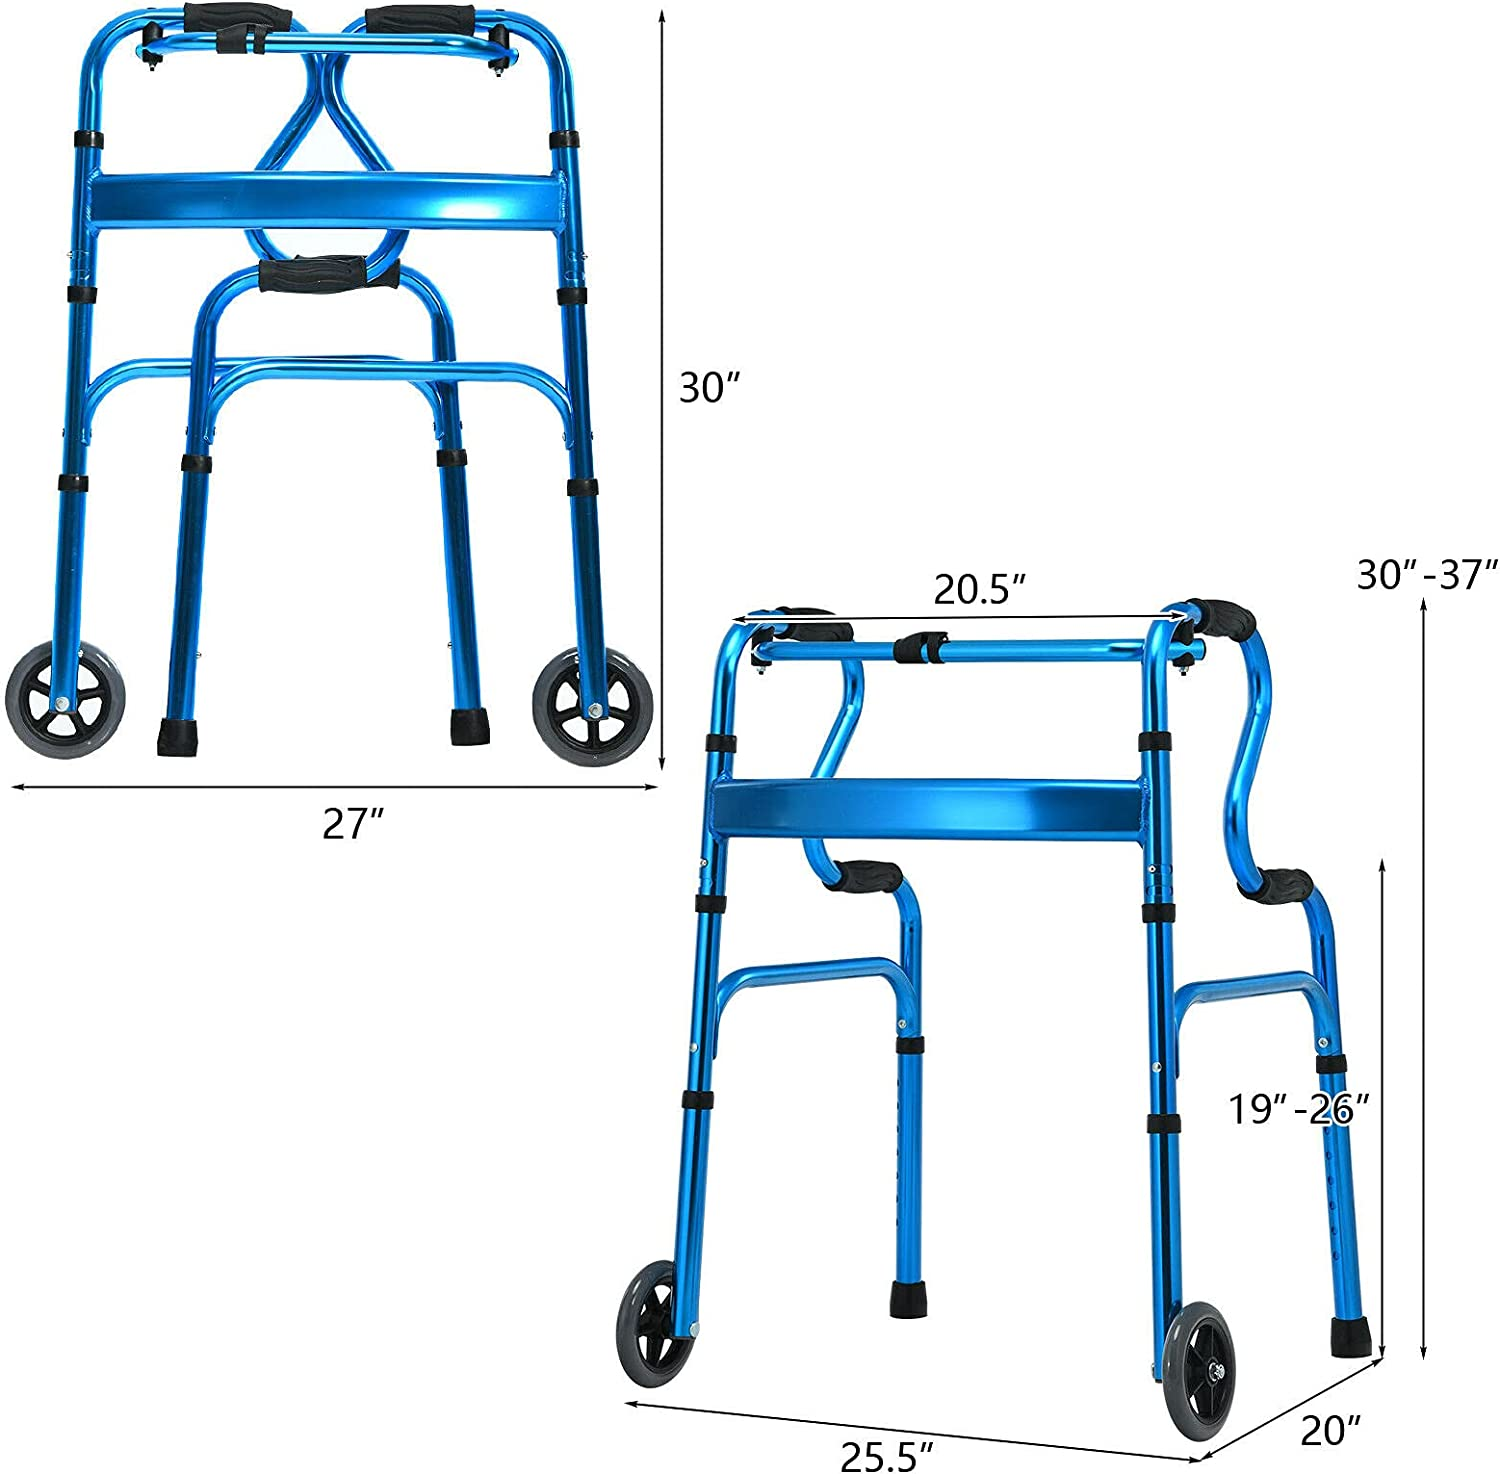 Goplus 440LBS Foldable Standard Walker, Reinforced and Thickened Rehabilitation Auxiliary Walking Frame with Wheels & Bi-Level Armrests, Height Adjustable Elderly Walking Mobility Aid (Blue) : Health & Household